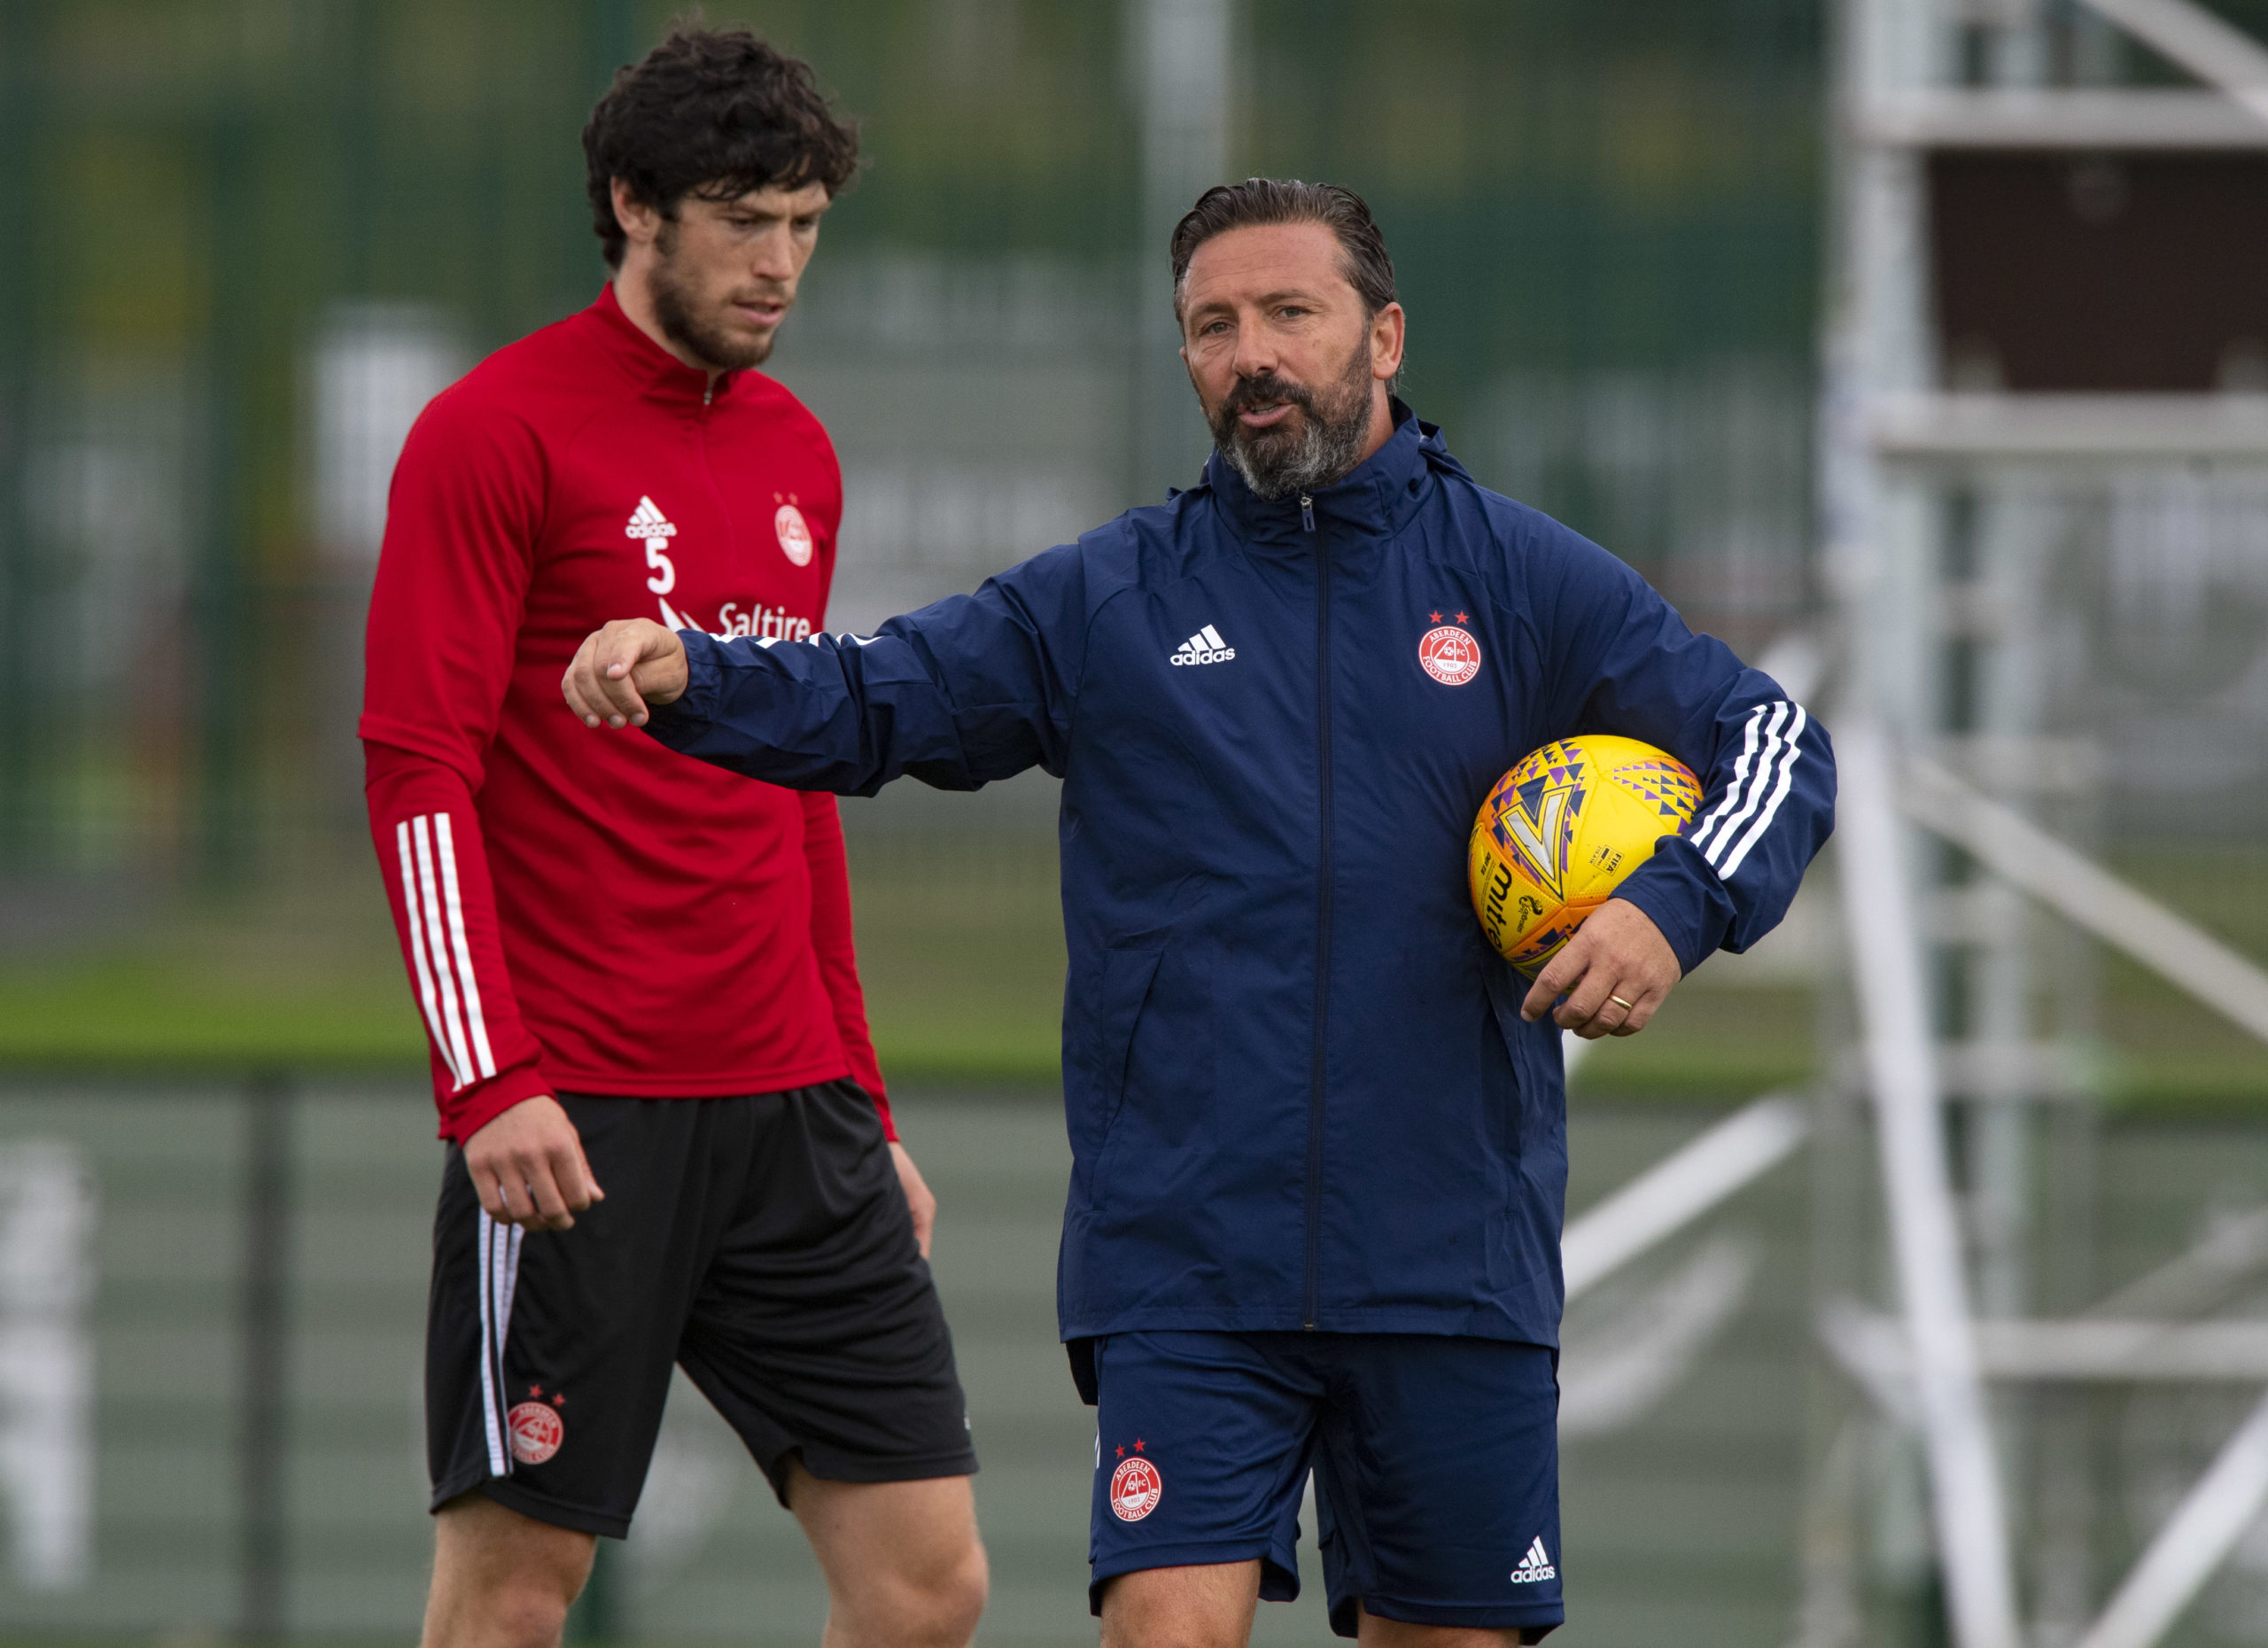 Aberdeen manager Derek McInnes with Scott McKenna at training.